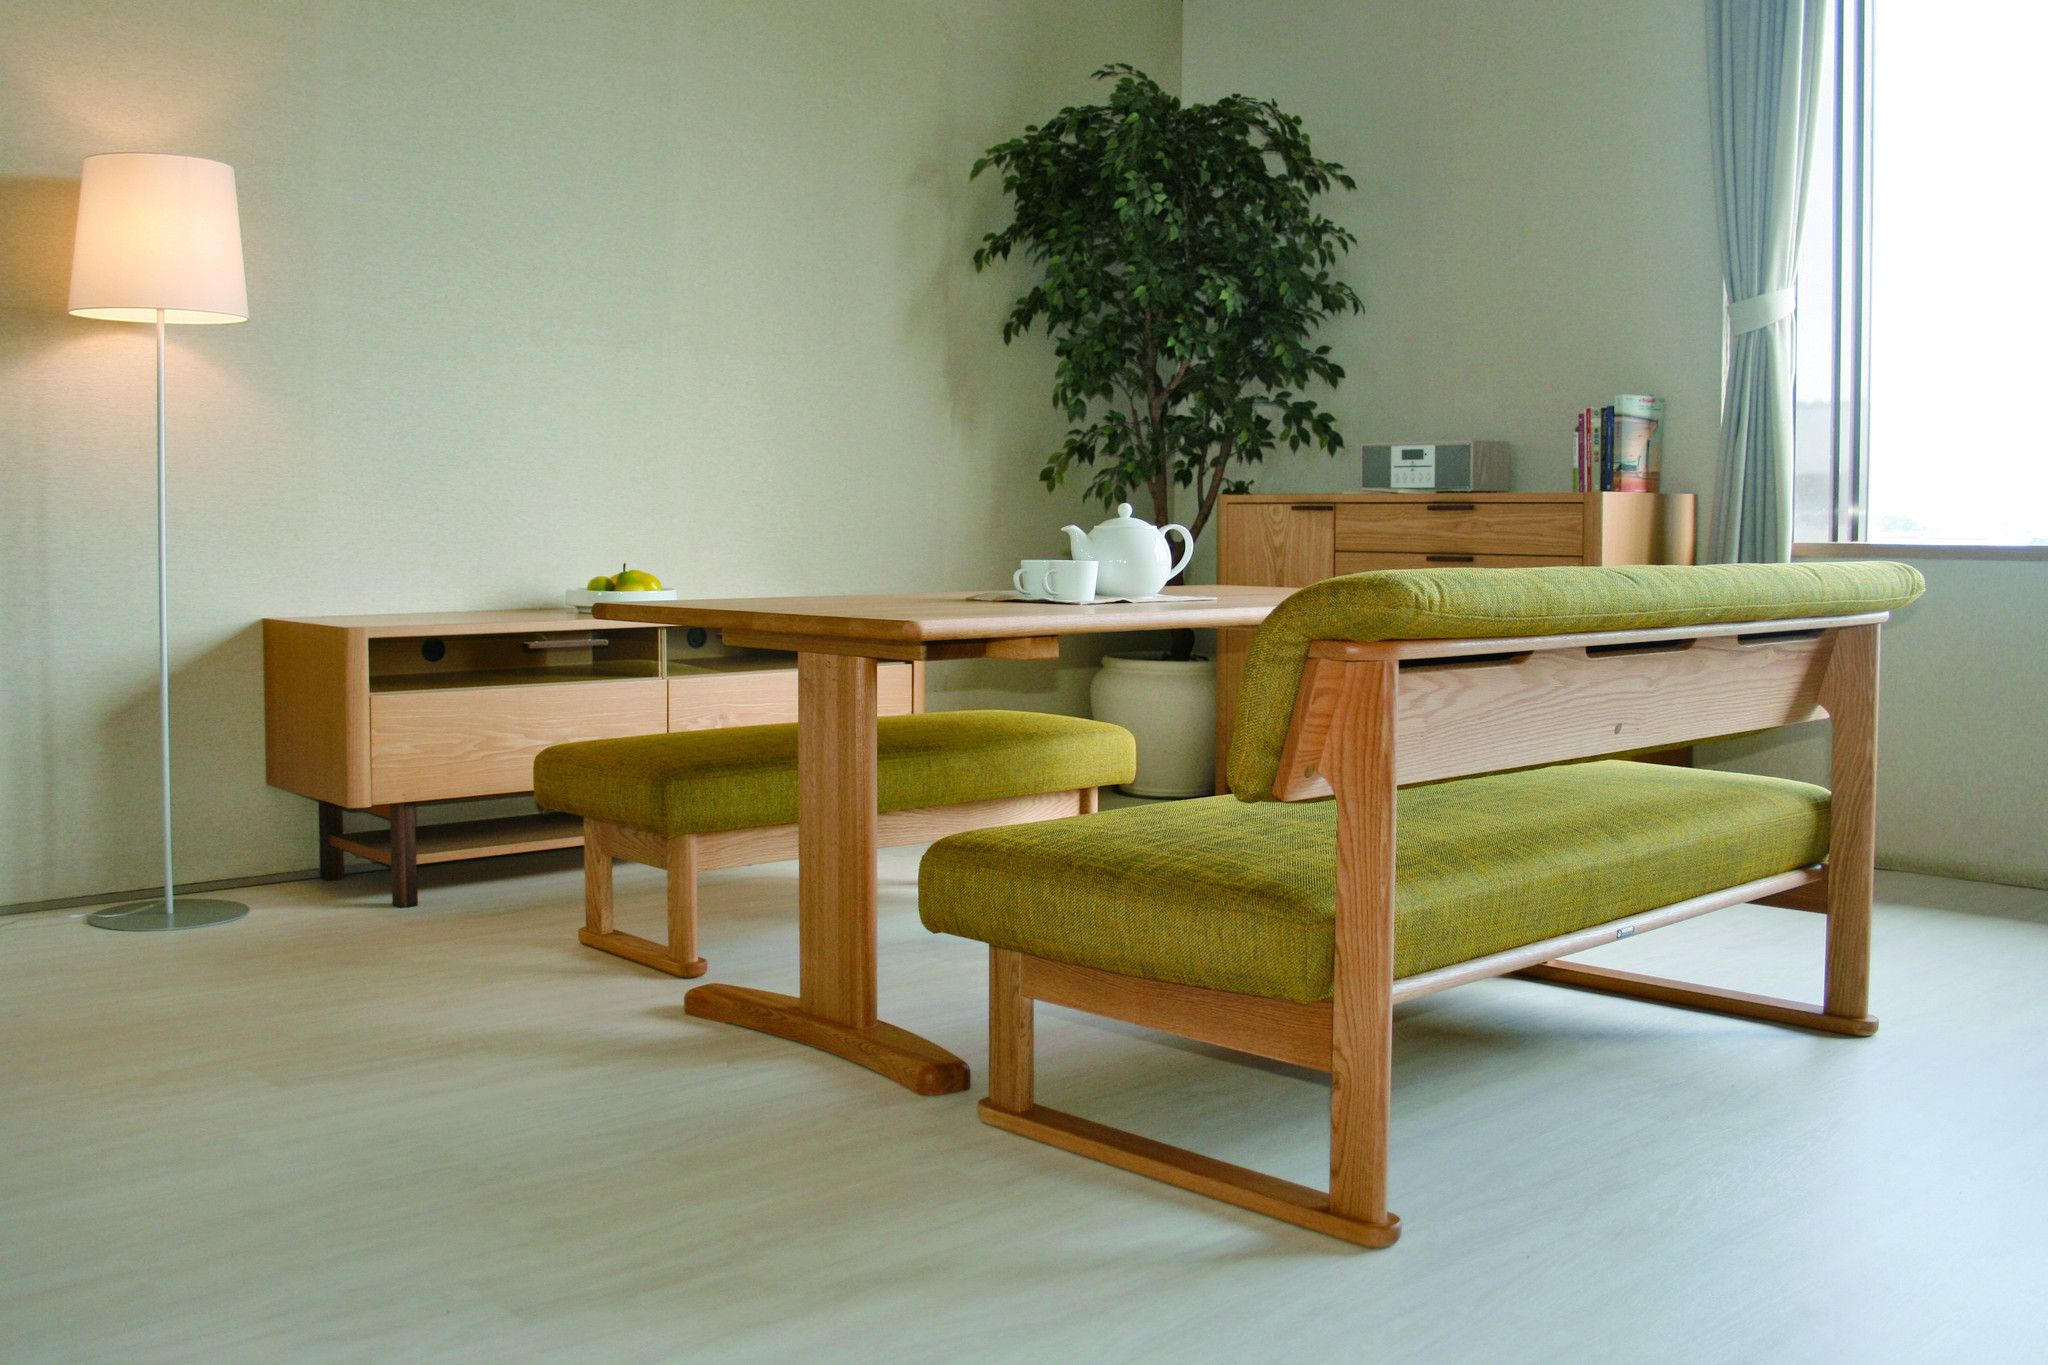 Nagano Interior - LinX Dining Table DT601 - Dining Table